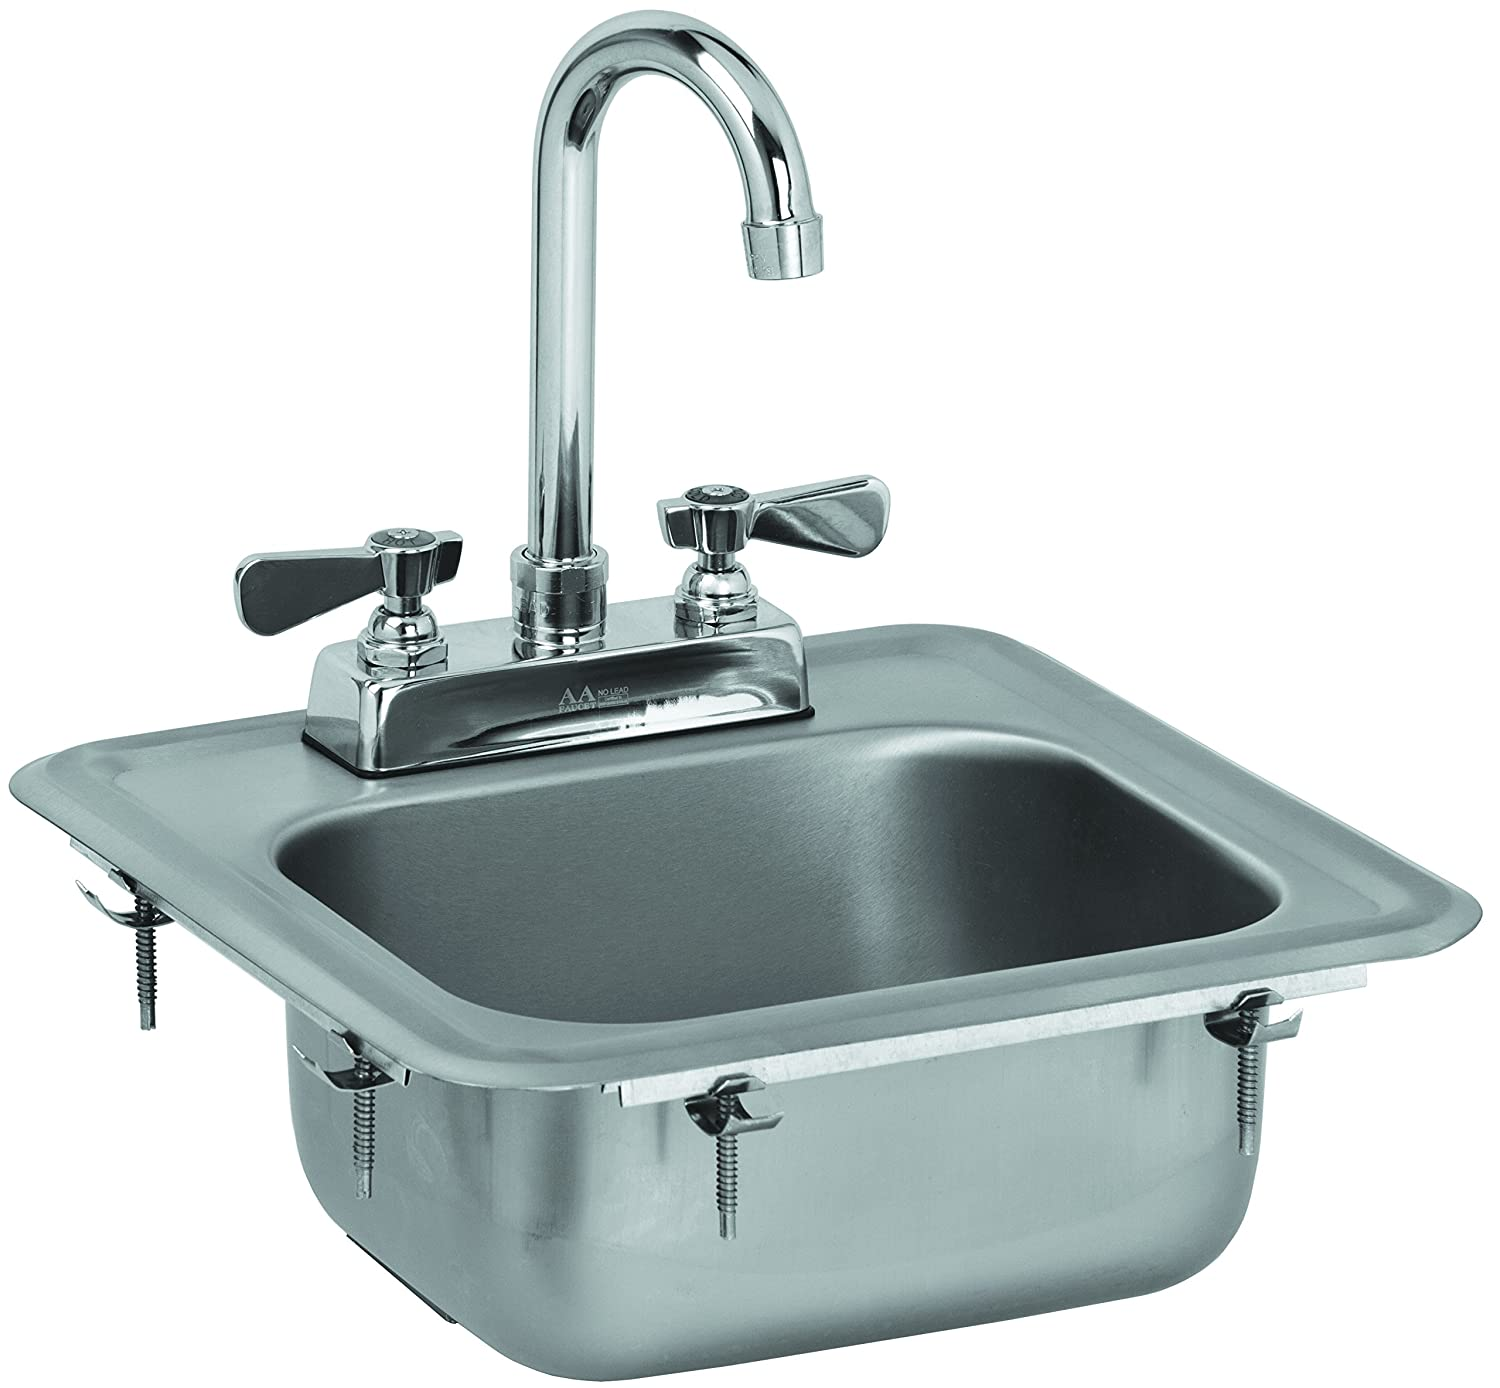 "ACE HS-0810IG Mini 13"" x 13"" Drop-In Hand Sink with Lead Free 6"" Spout Faucet & Strainer, ETL Certified"